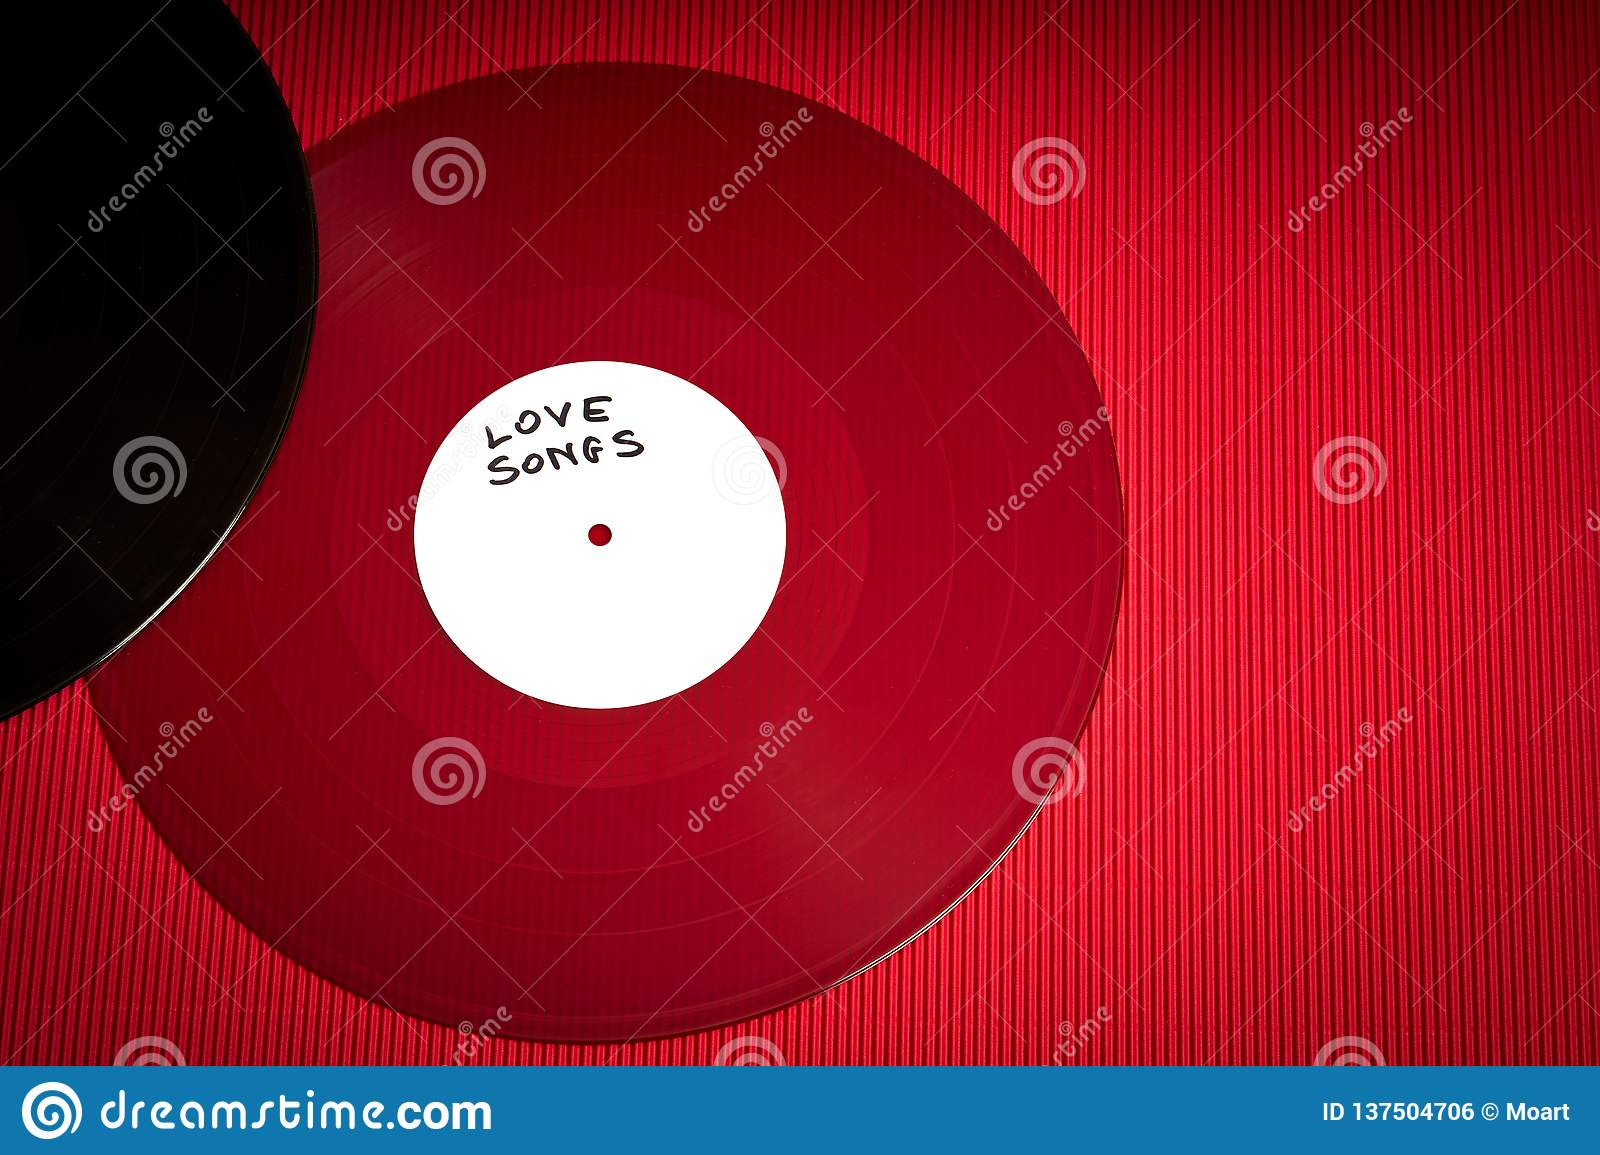 Valentines Day Background With Red LP Record With Love Songs